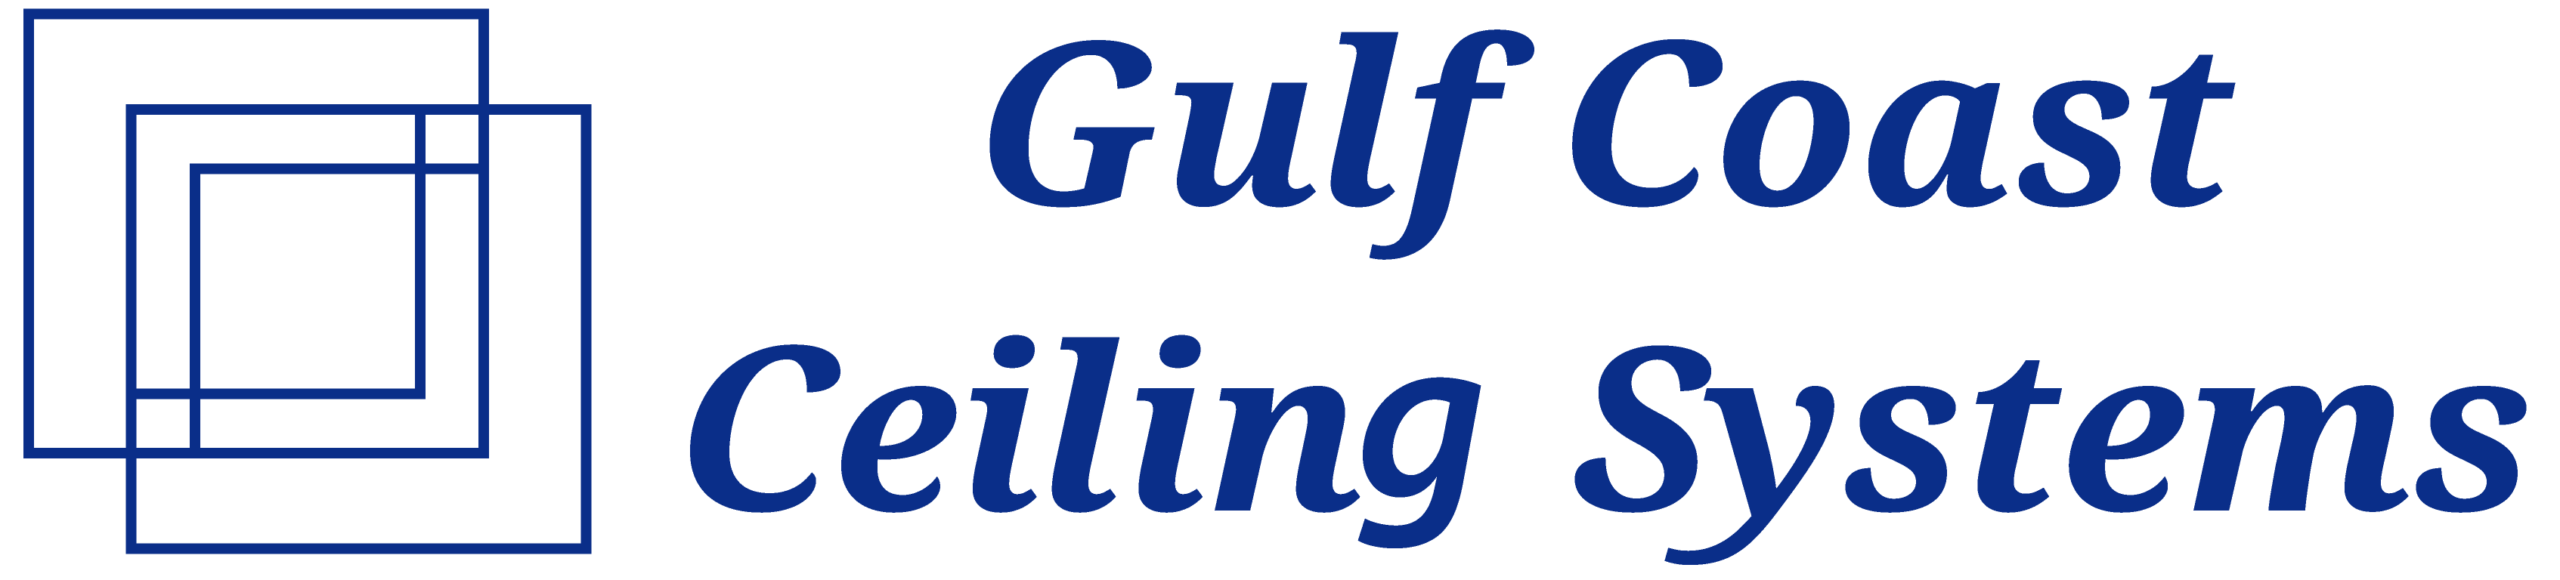 Gulf Coast Ceiling Systems